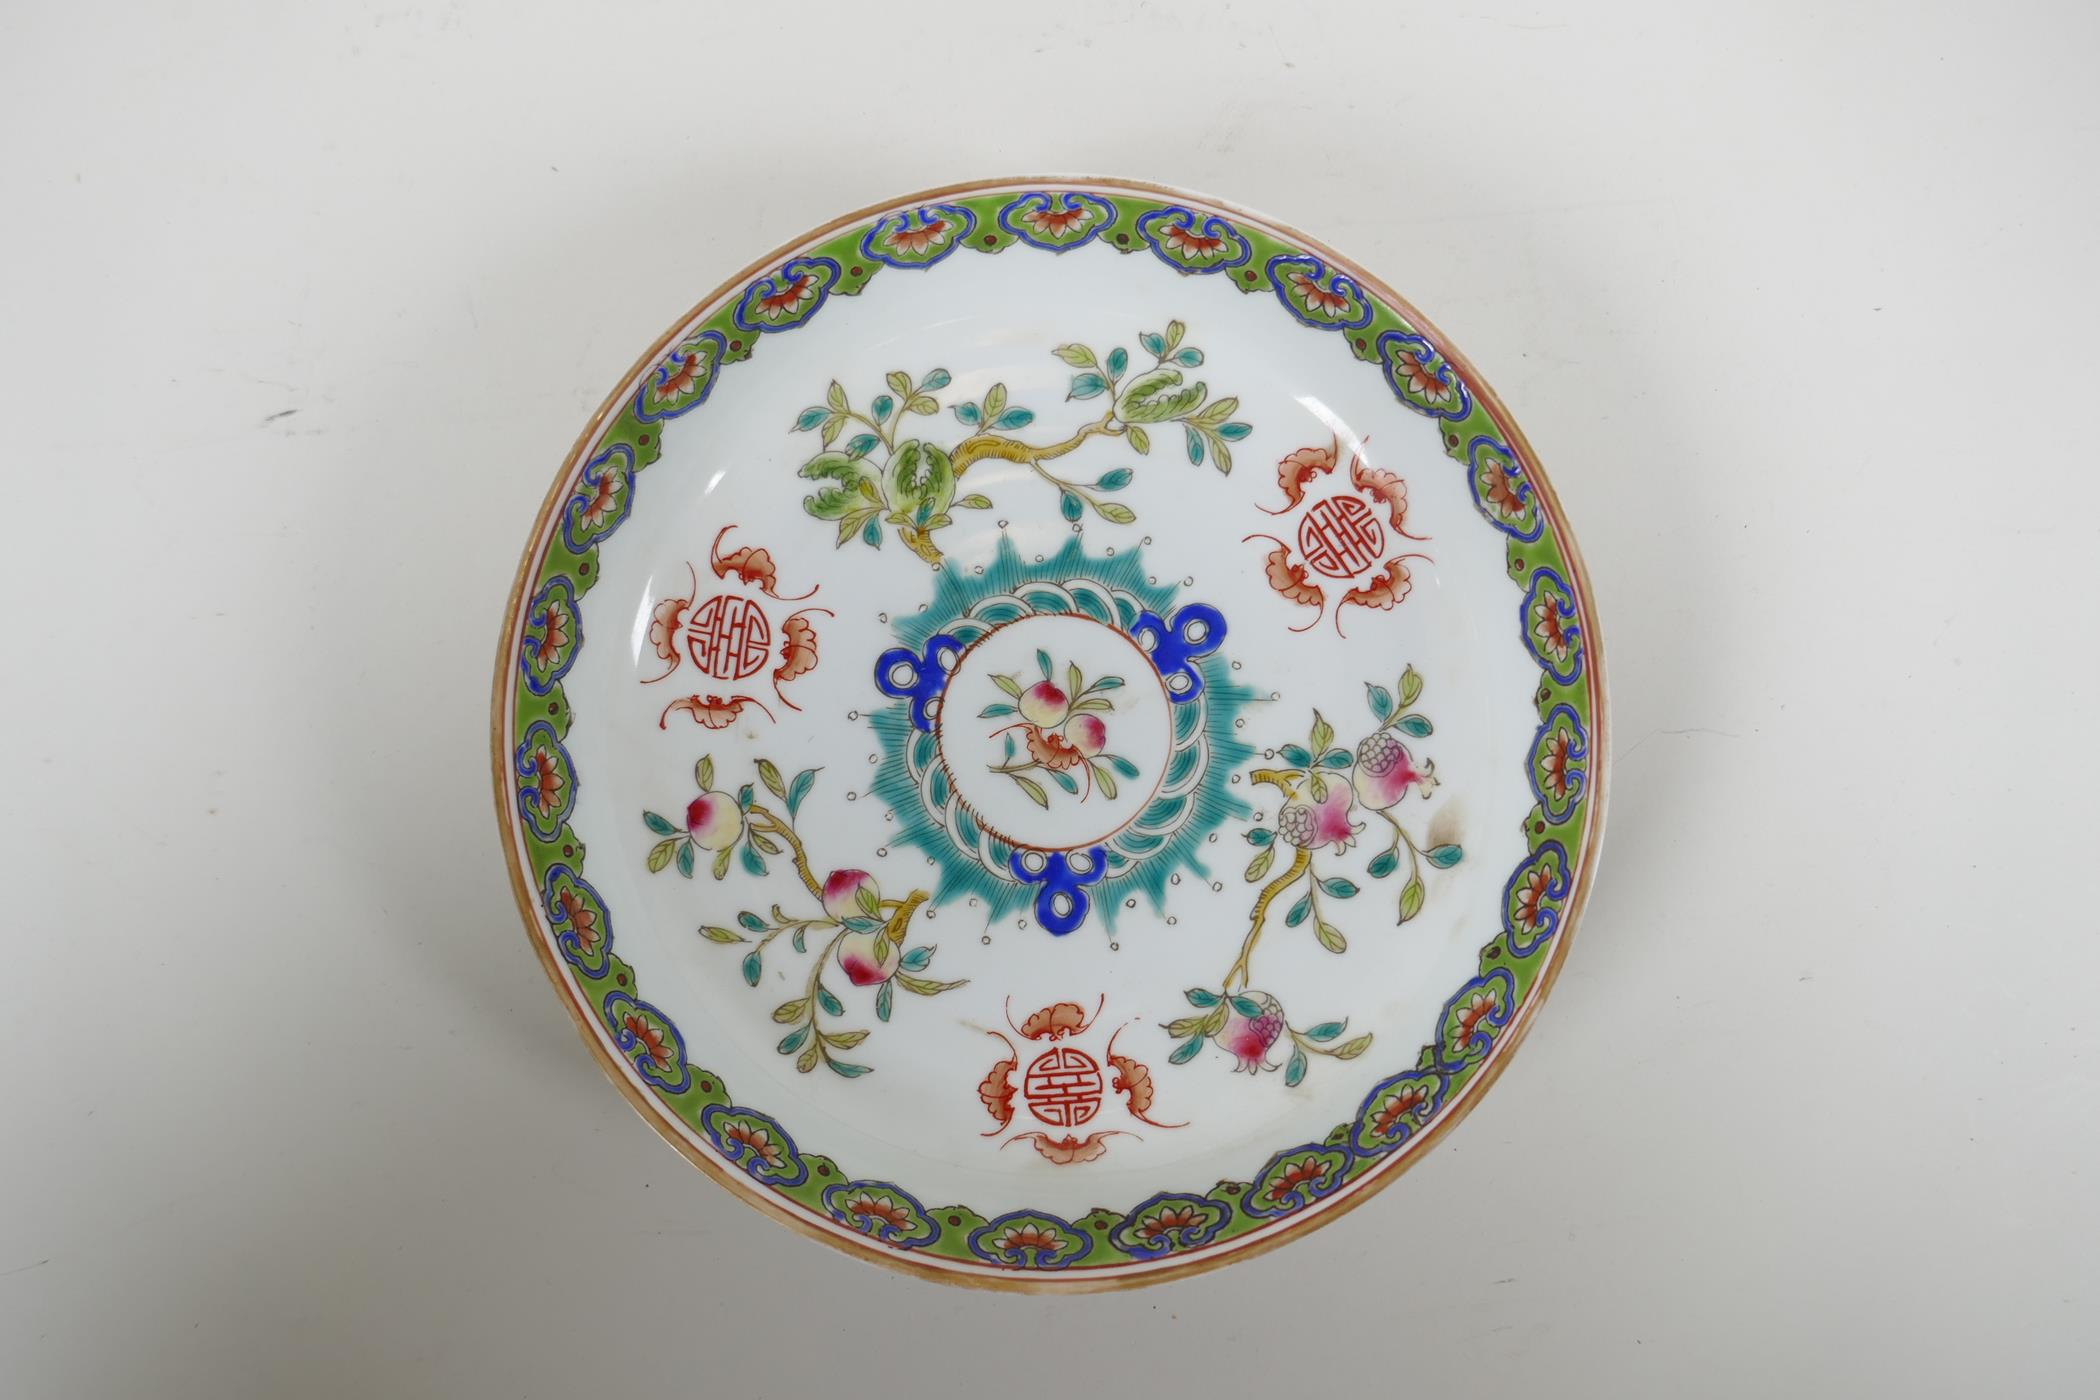 An early C20th Chinese famille verte porcelain dish decorated with bats, auspicious symbols and